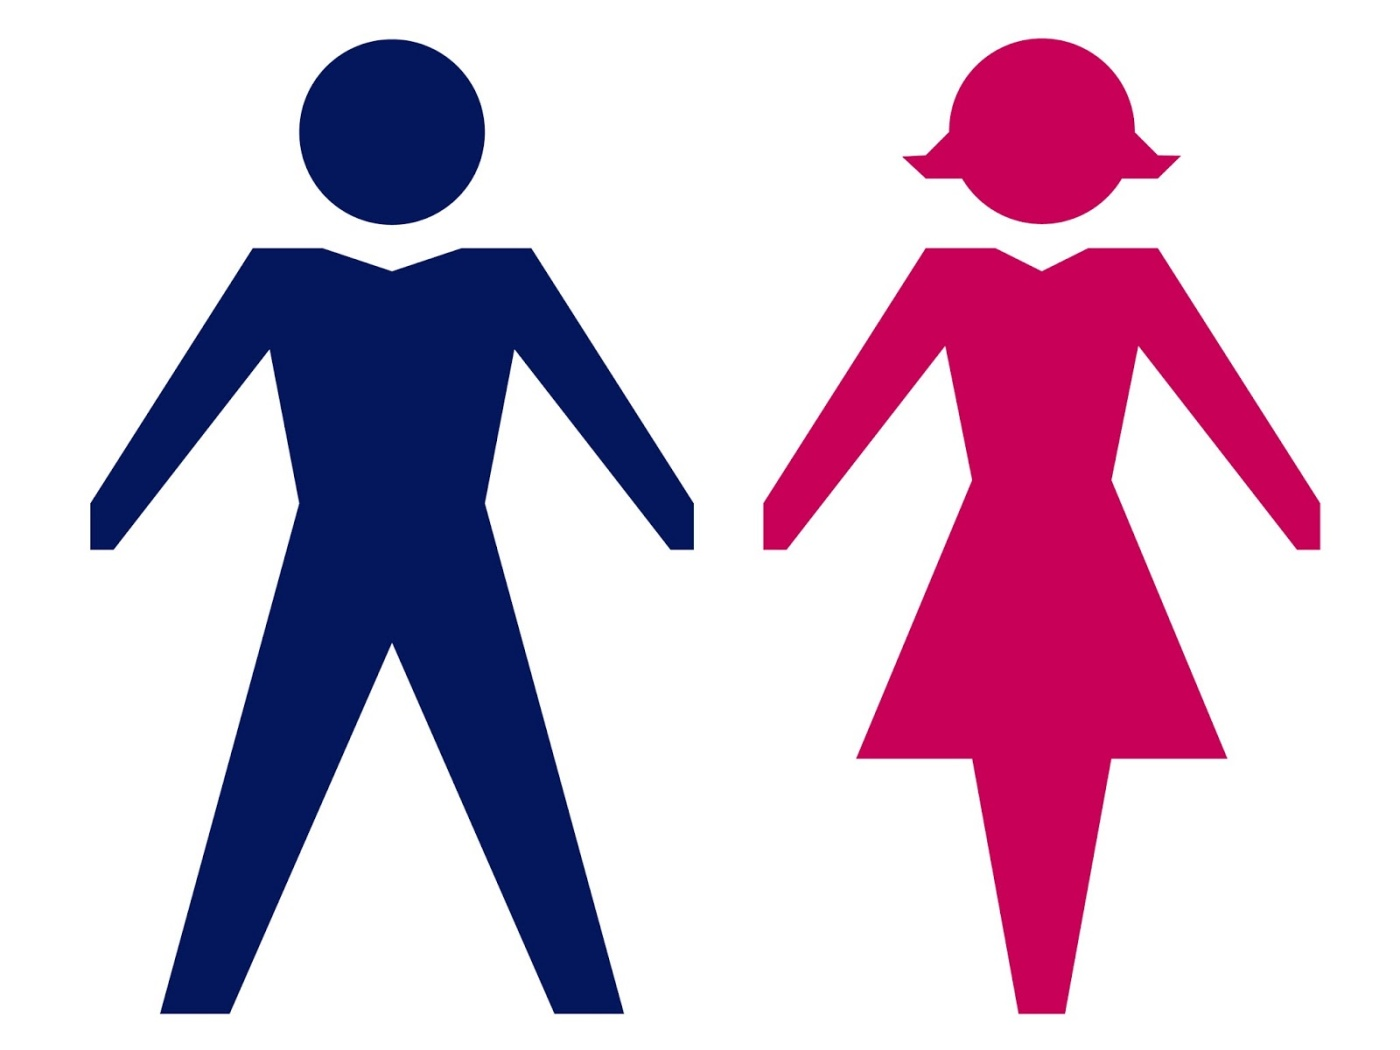 power structures of men and women in Powerful men, studies show, overestimate the sexual interest of others and erroneously believe that the women around them are more attracted to them than is actually the case social scientists have documented how coercive power structures sustain themselves through social myths, which most.